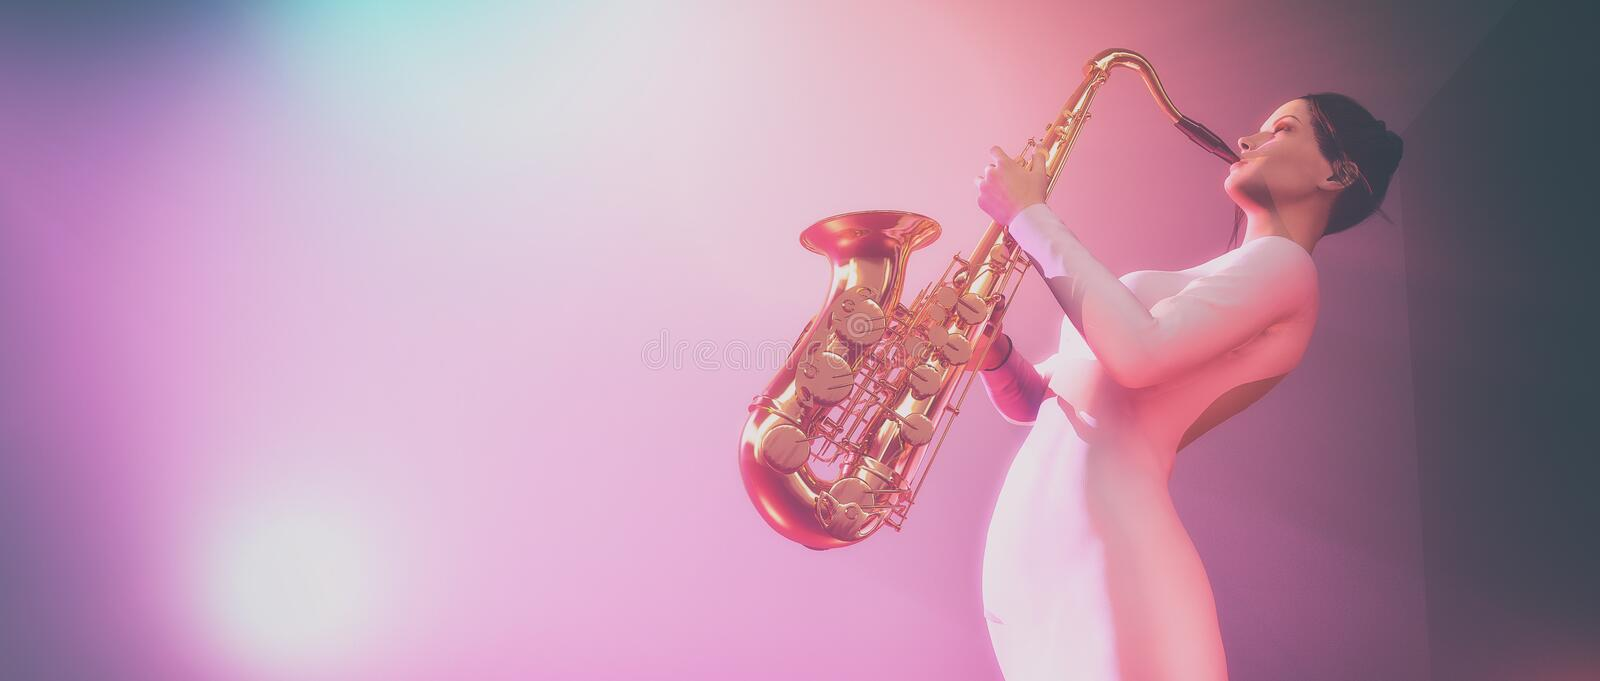 Young woman with saxophone royalty free illustration